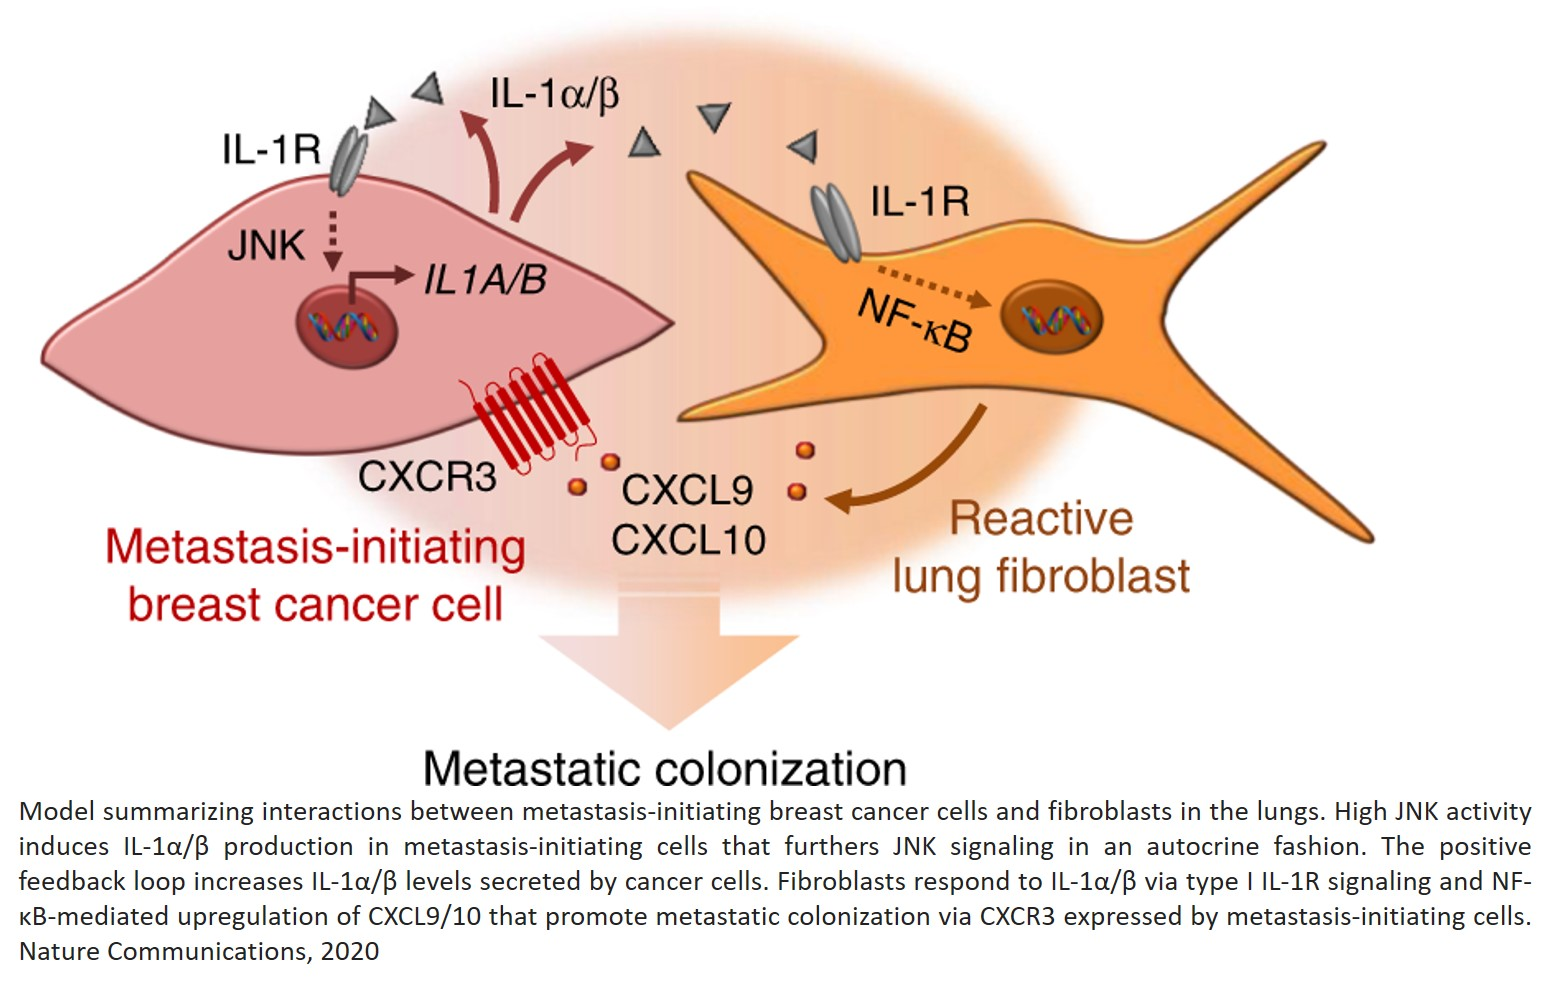 In order to colonize other organs and grow into metastases, tumor cells that detach from the parent tumor need to manipulate their new microenvironment and create a 'metastatic niche'. Scientists have now discovered that some cancer cells stimulate connec